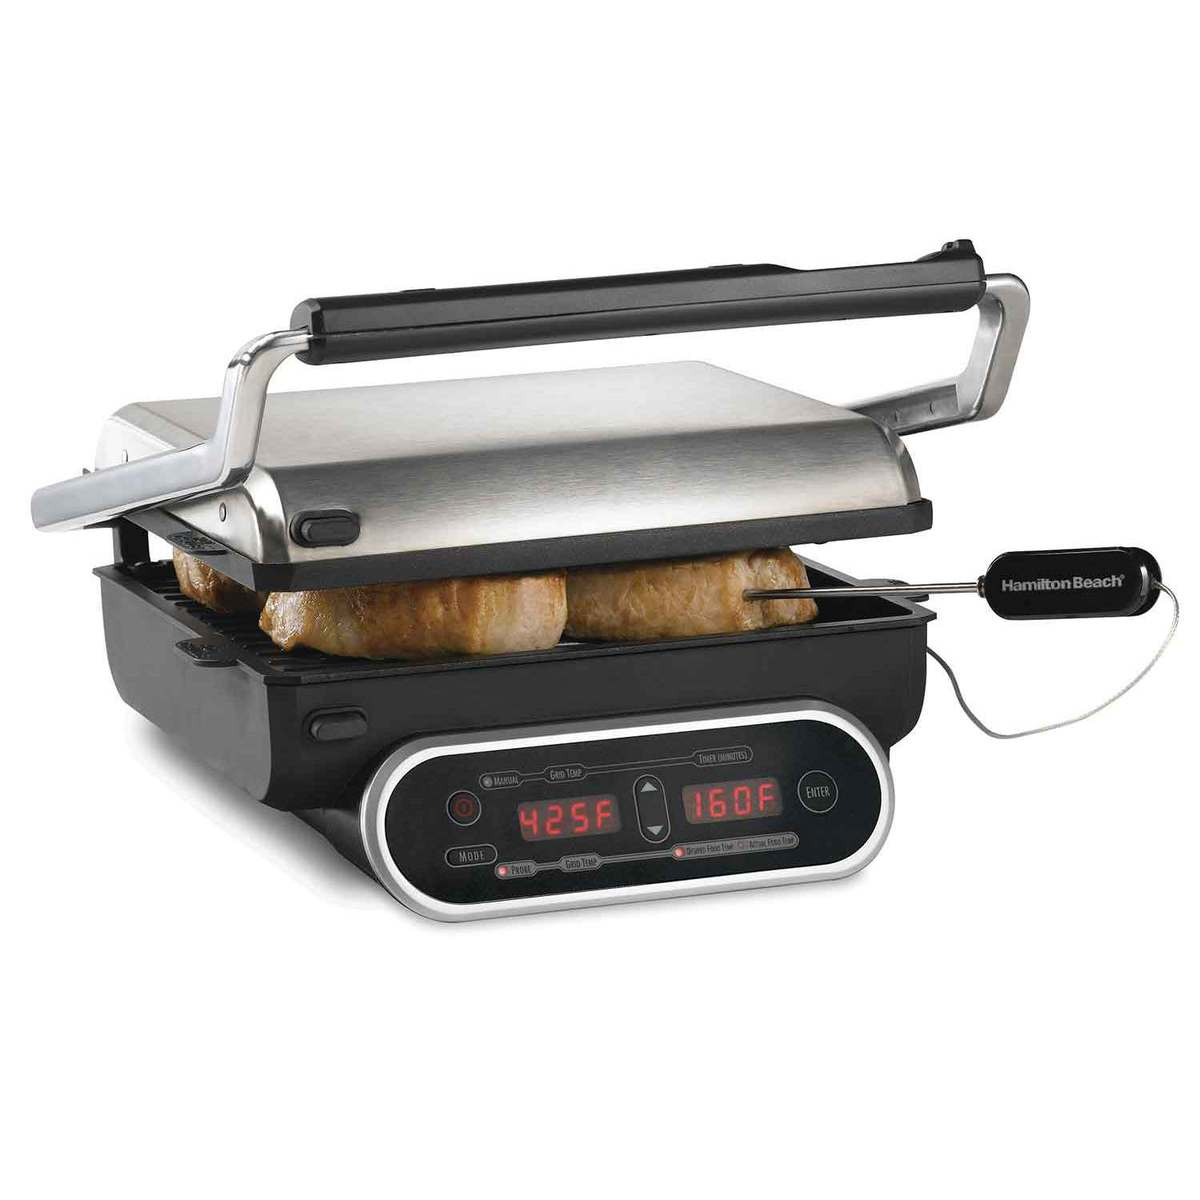 Set & Forget® Probe Grill (25217)